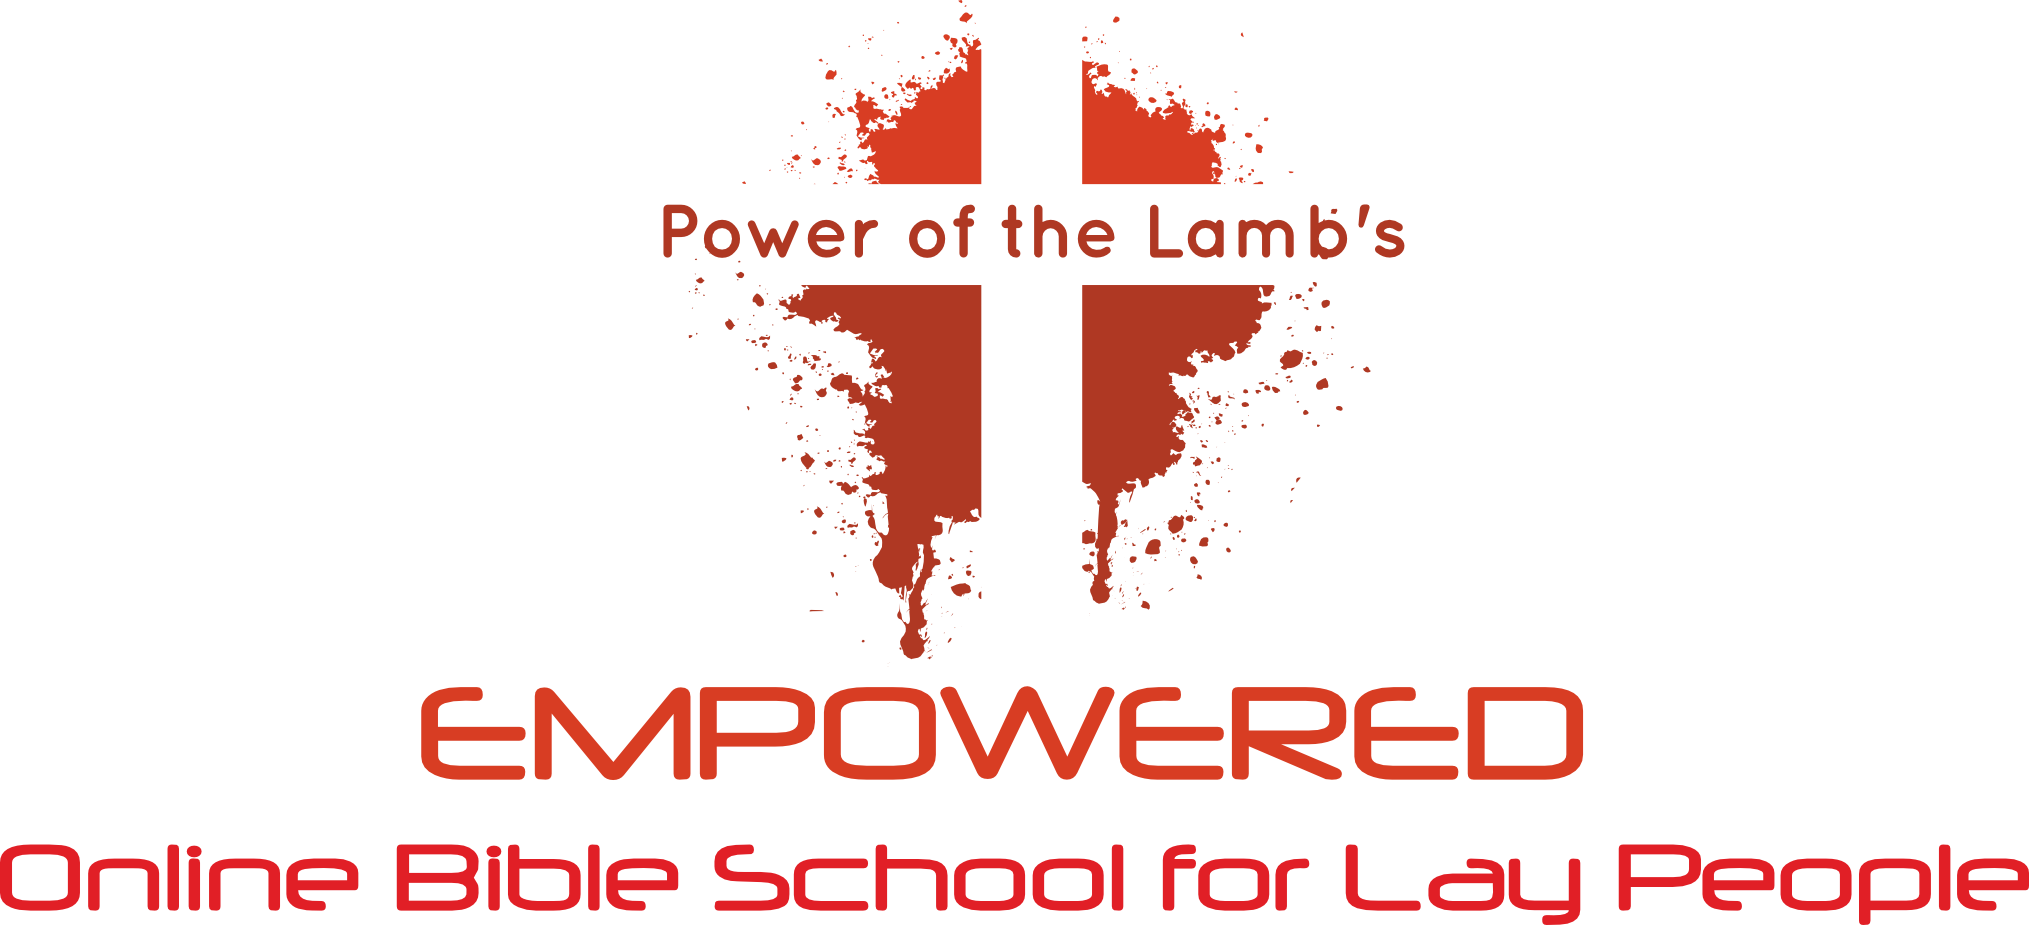 EMPOWERED: Online Bible School for Lay People